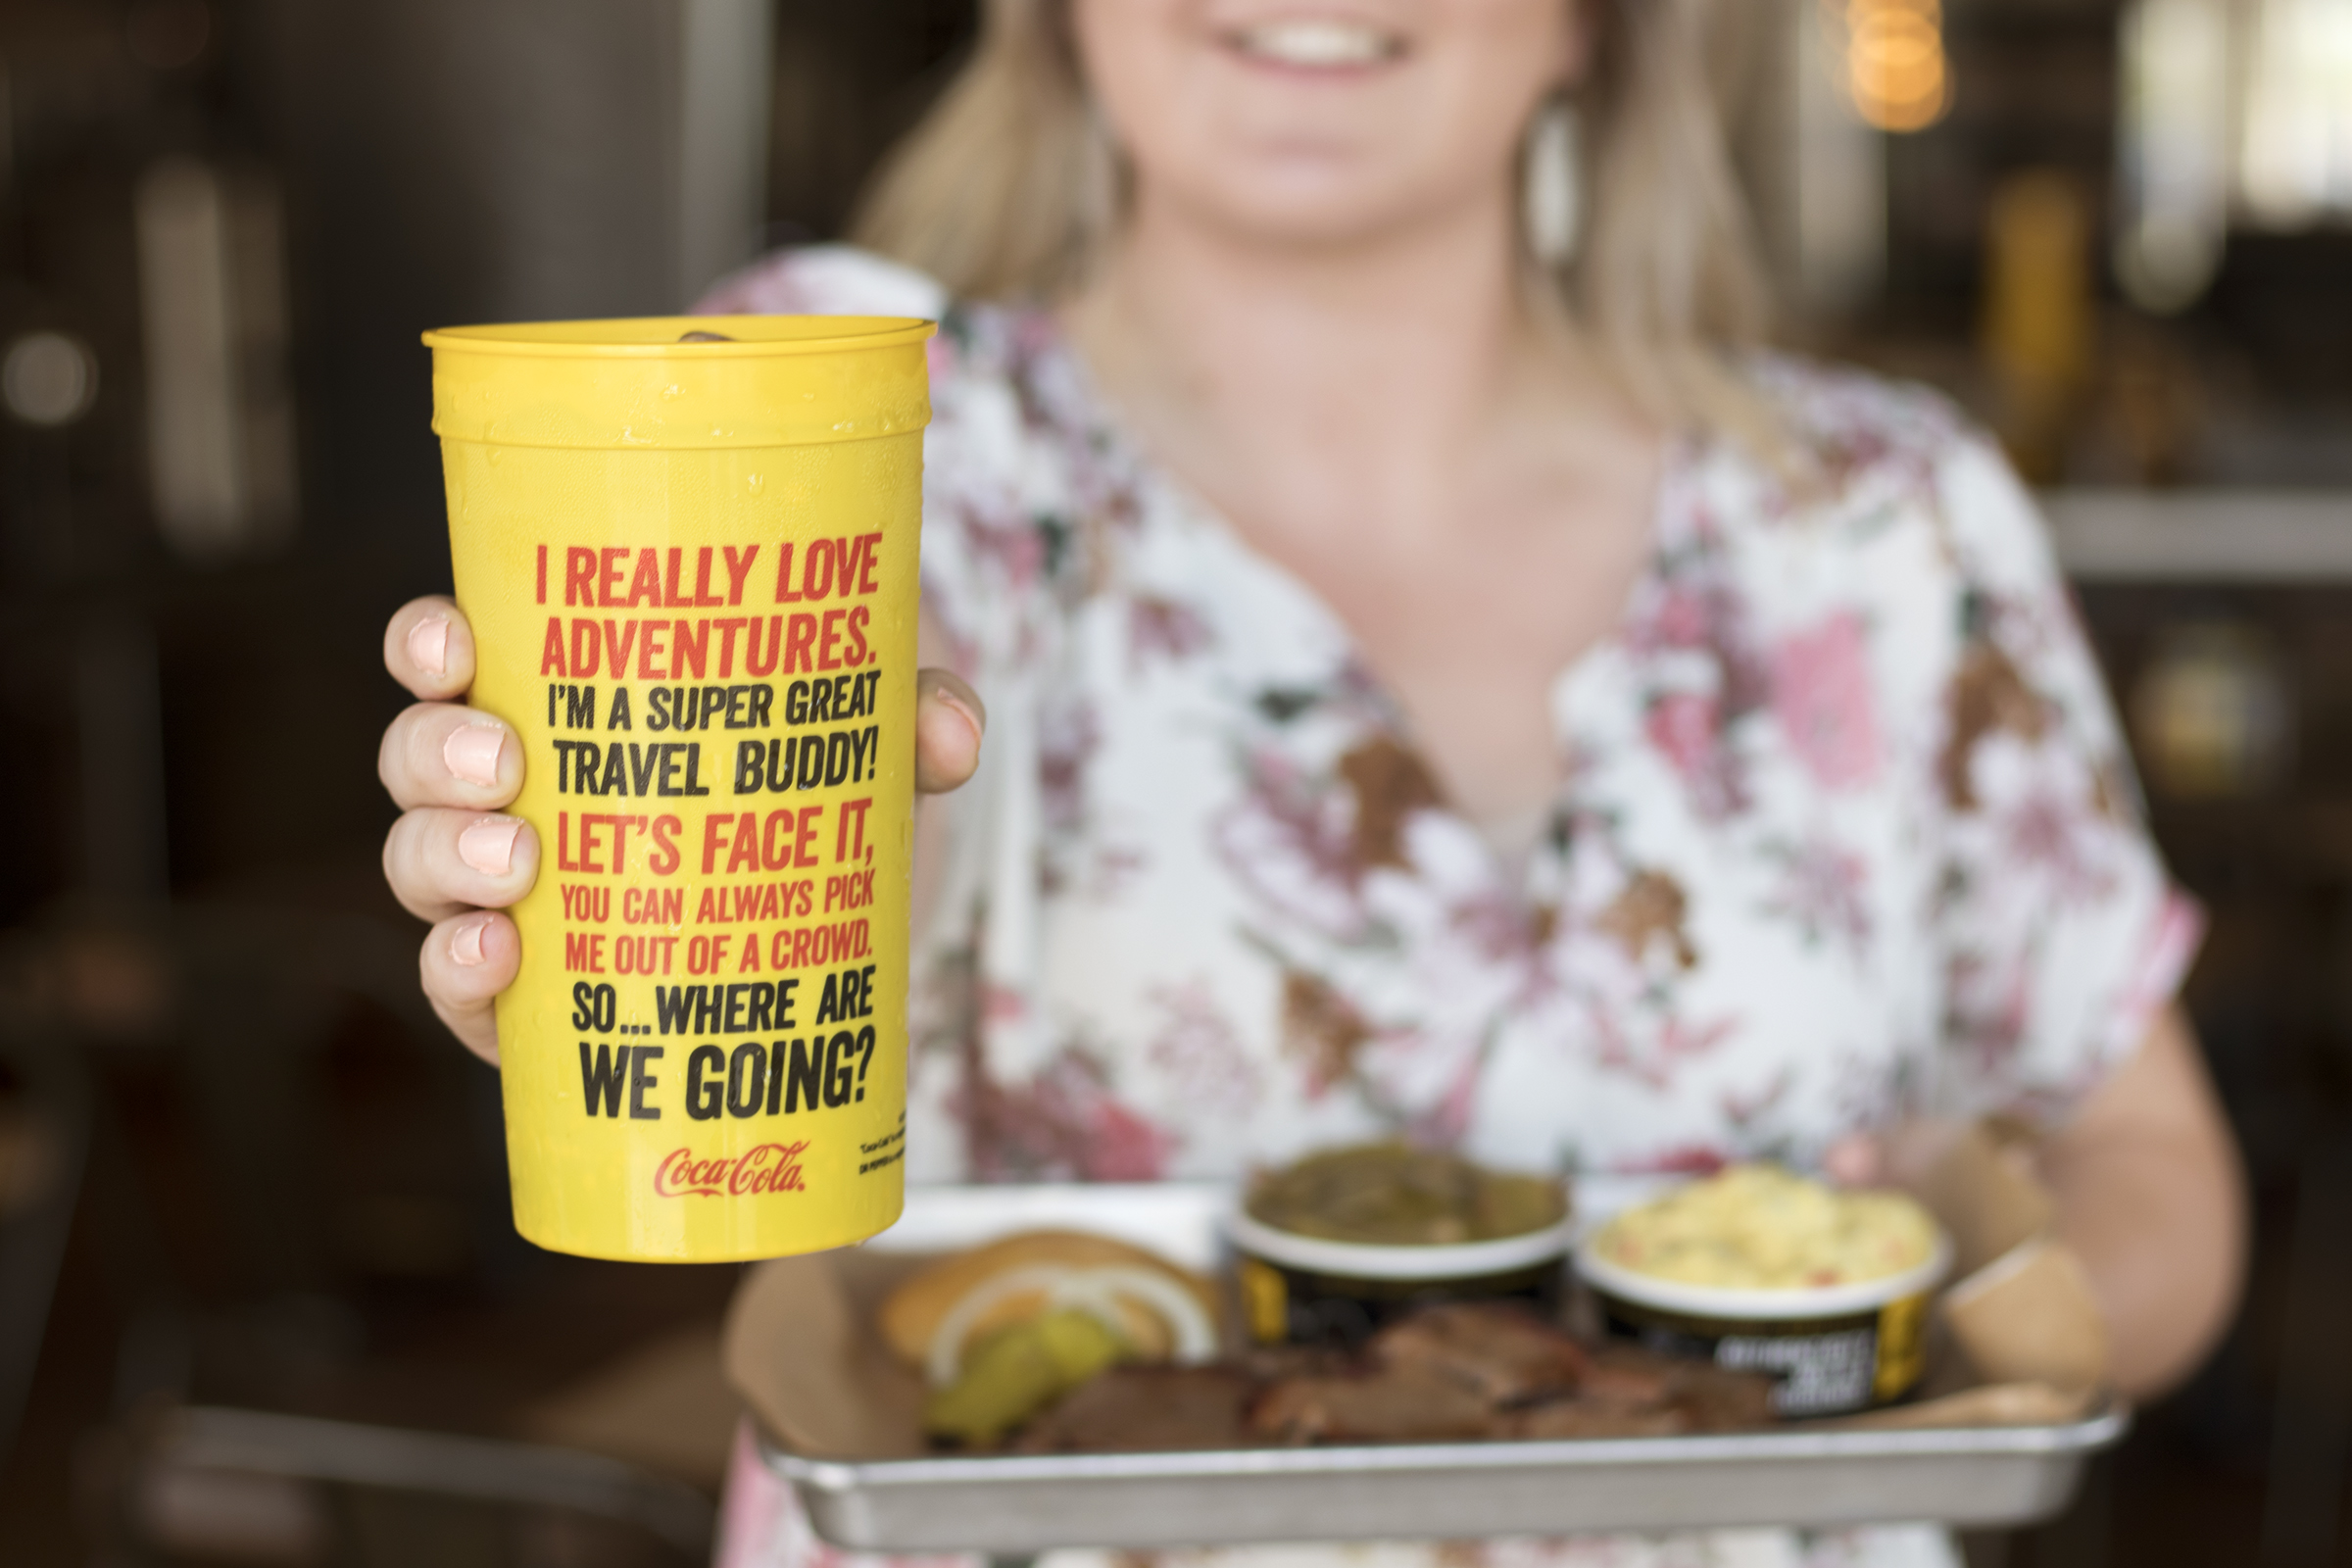 New Dickey's Barbecue Pit Location Opening in Prosper